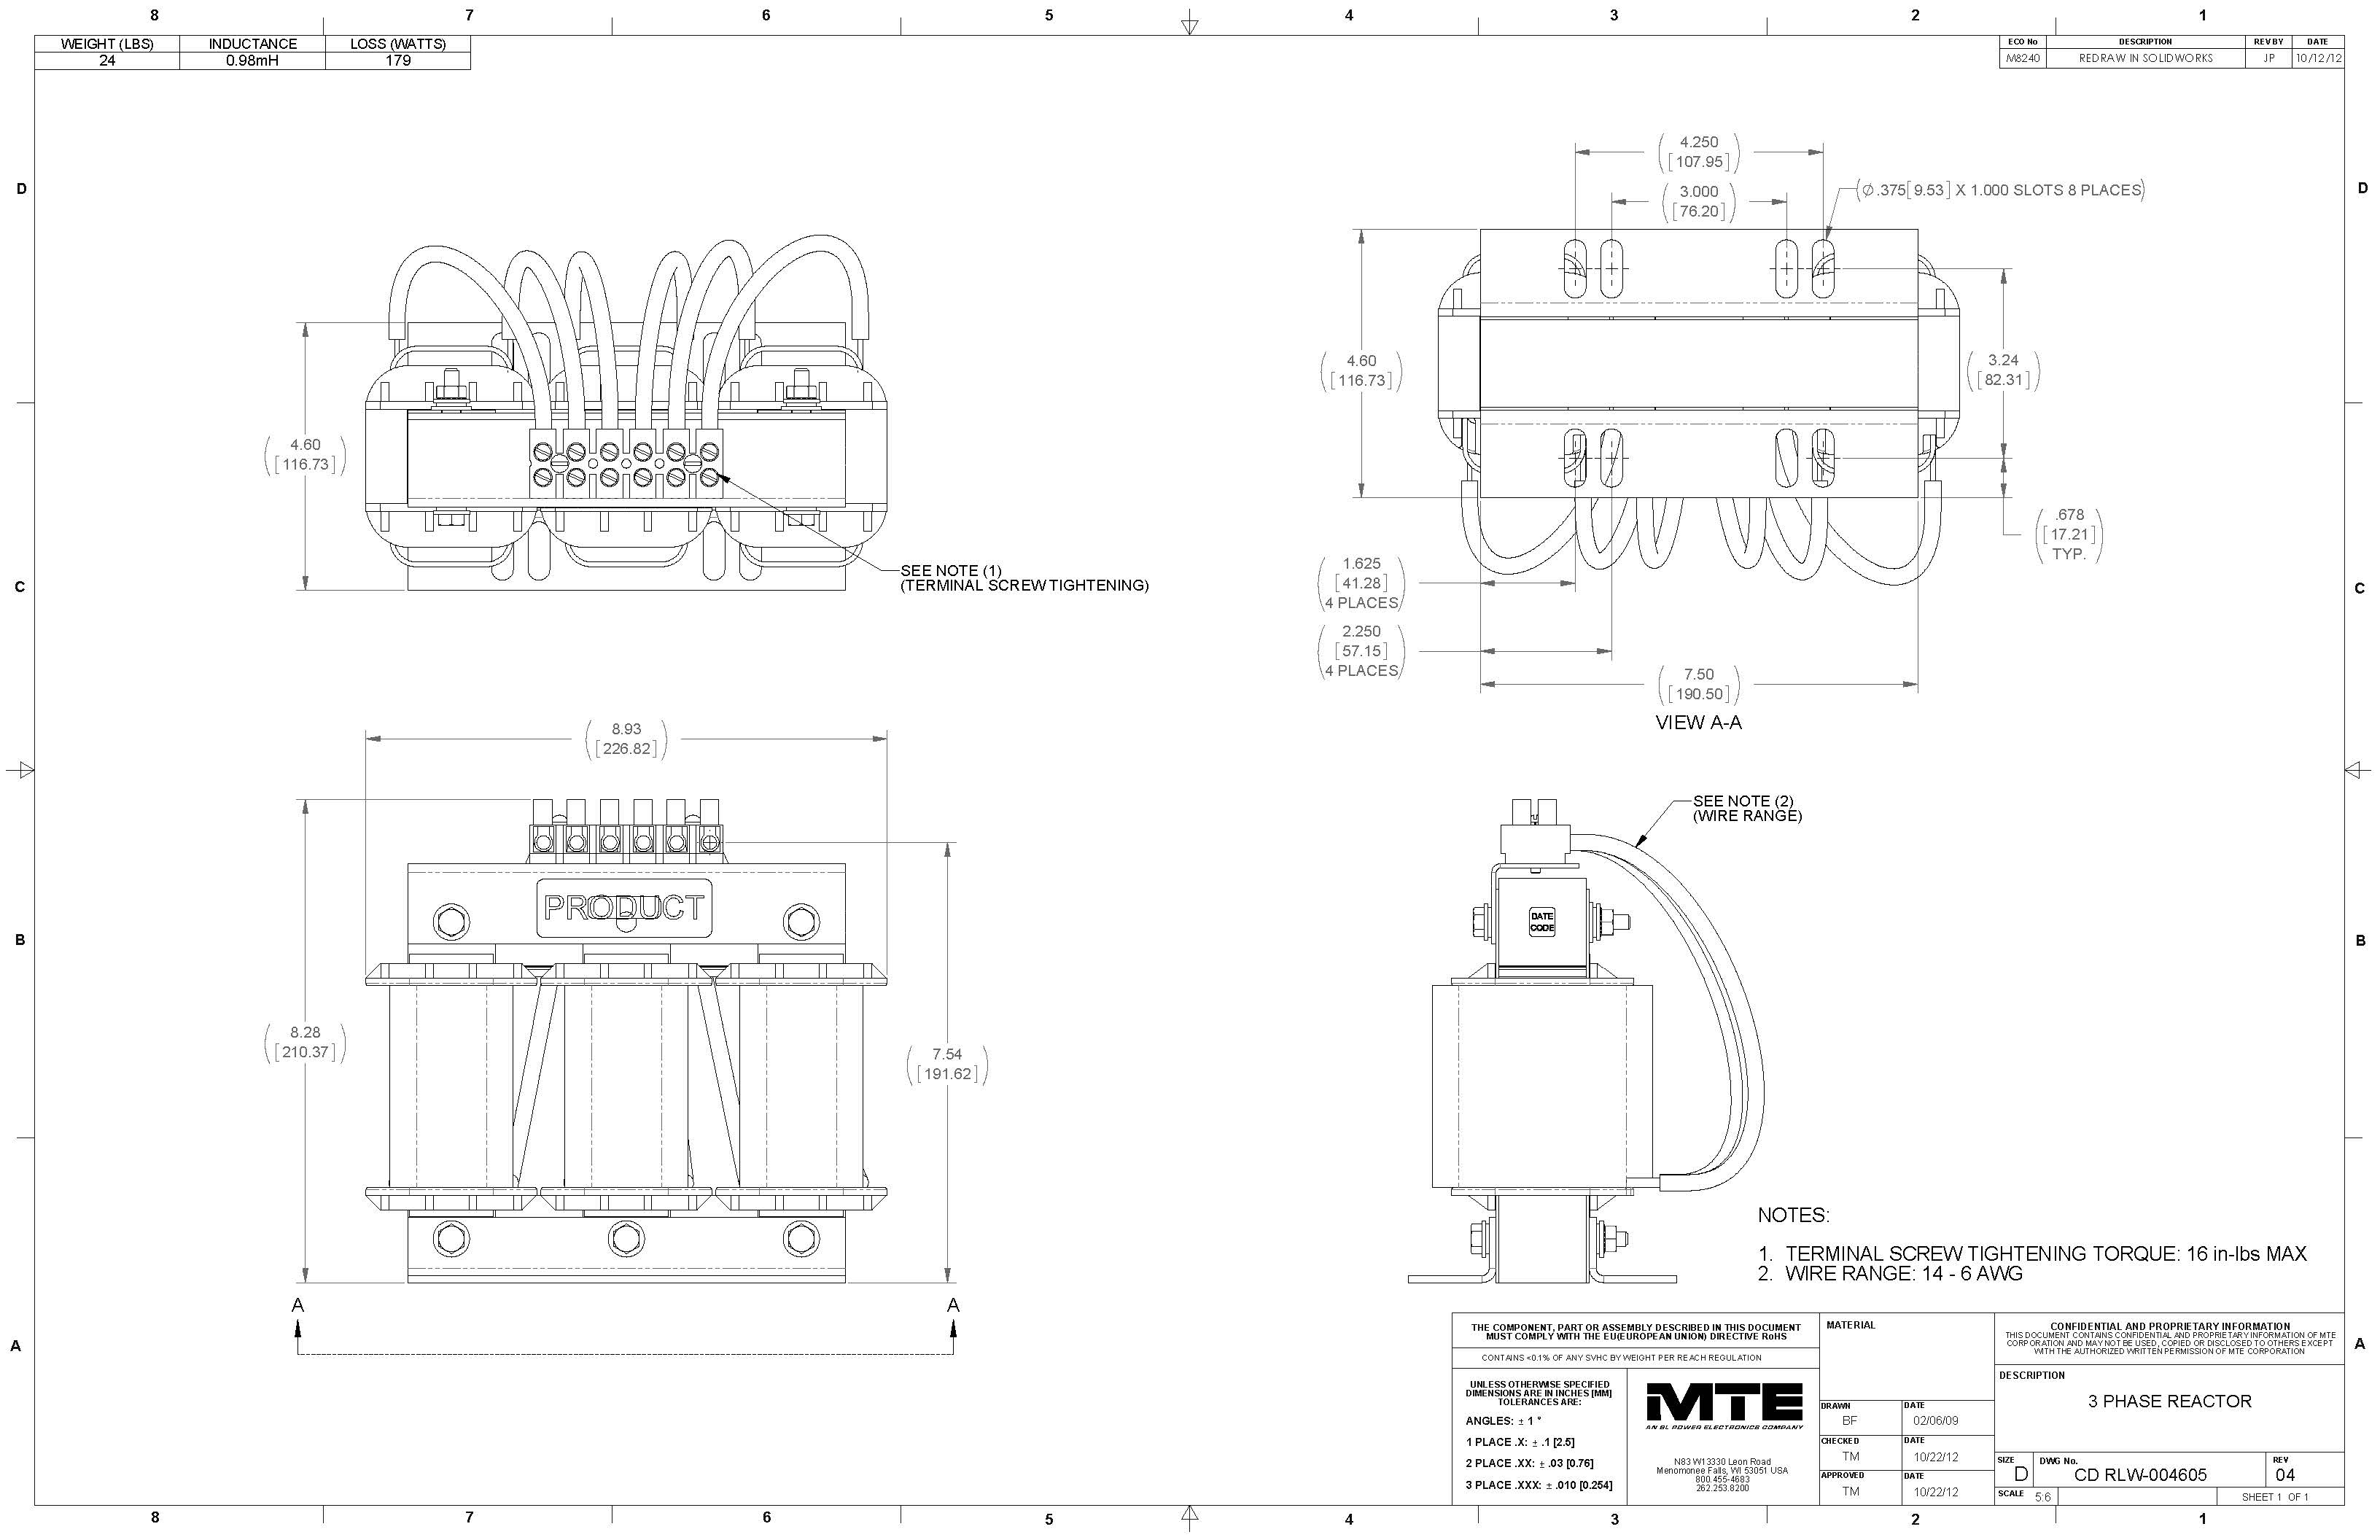 Image of an MTE Reactor RLW-004605